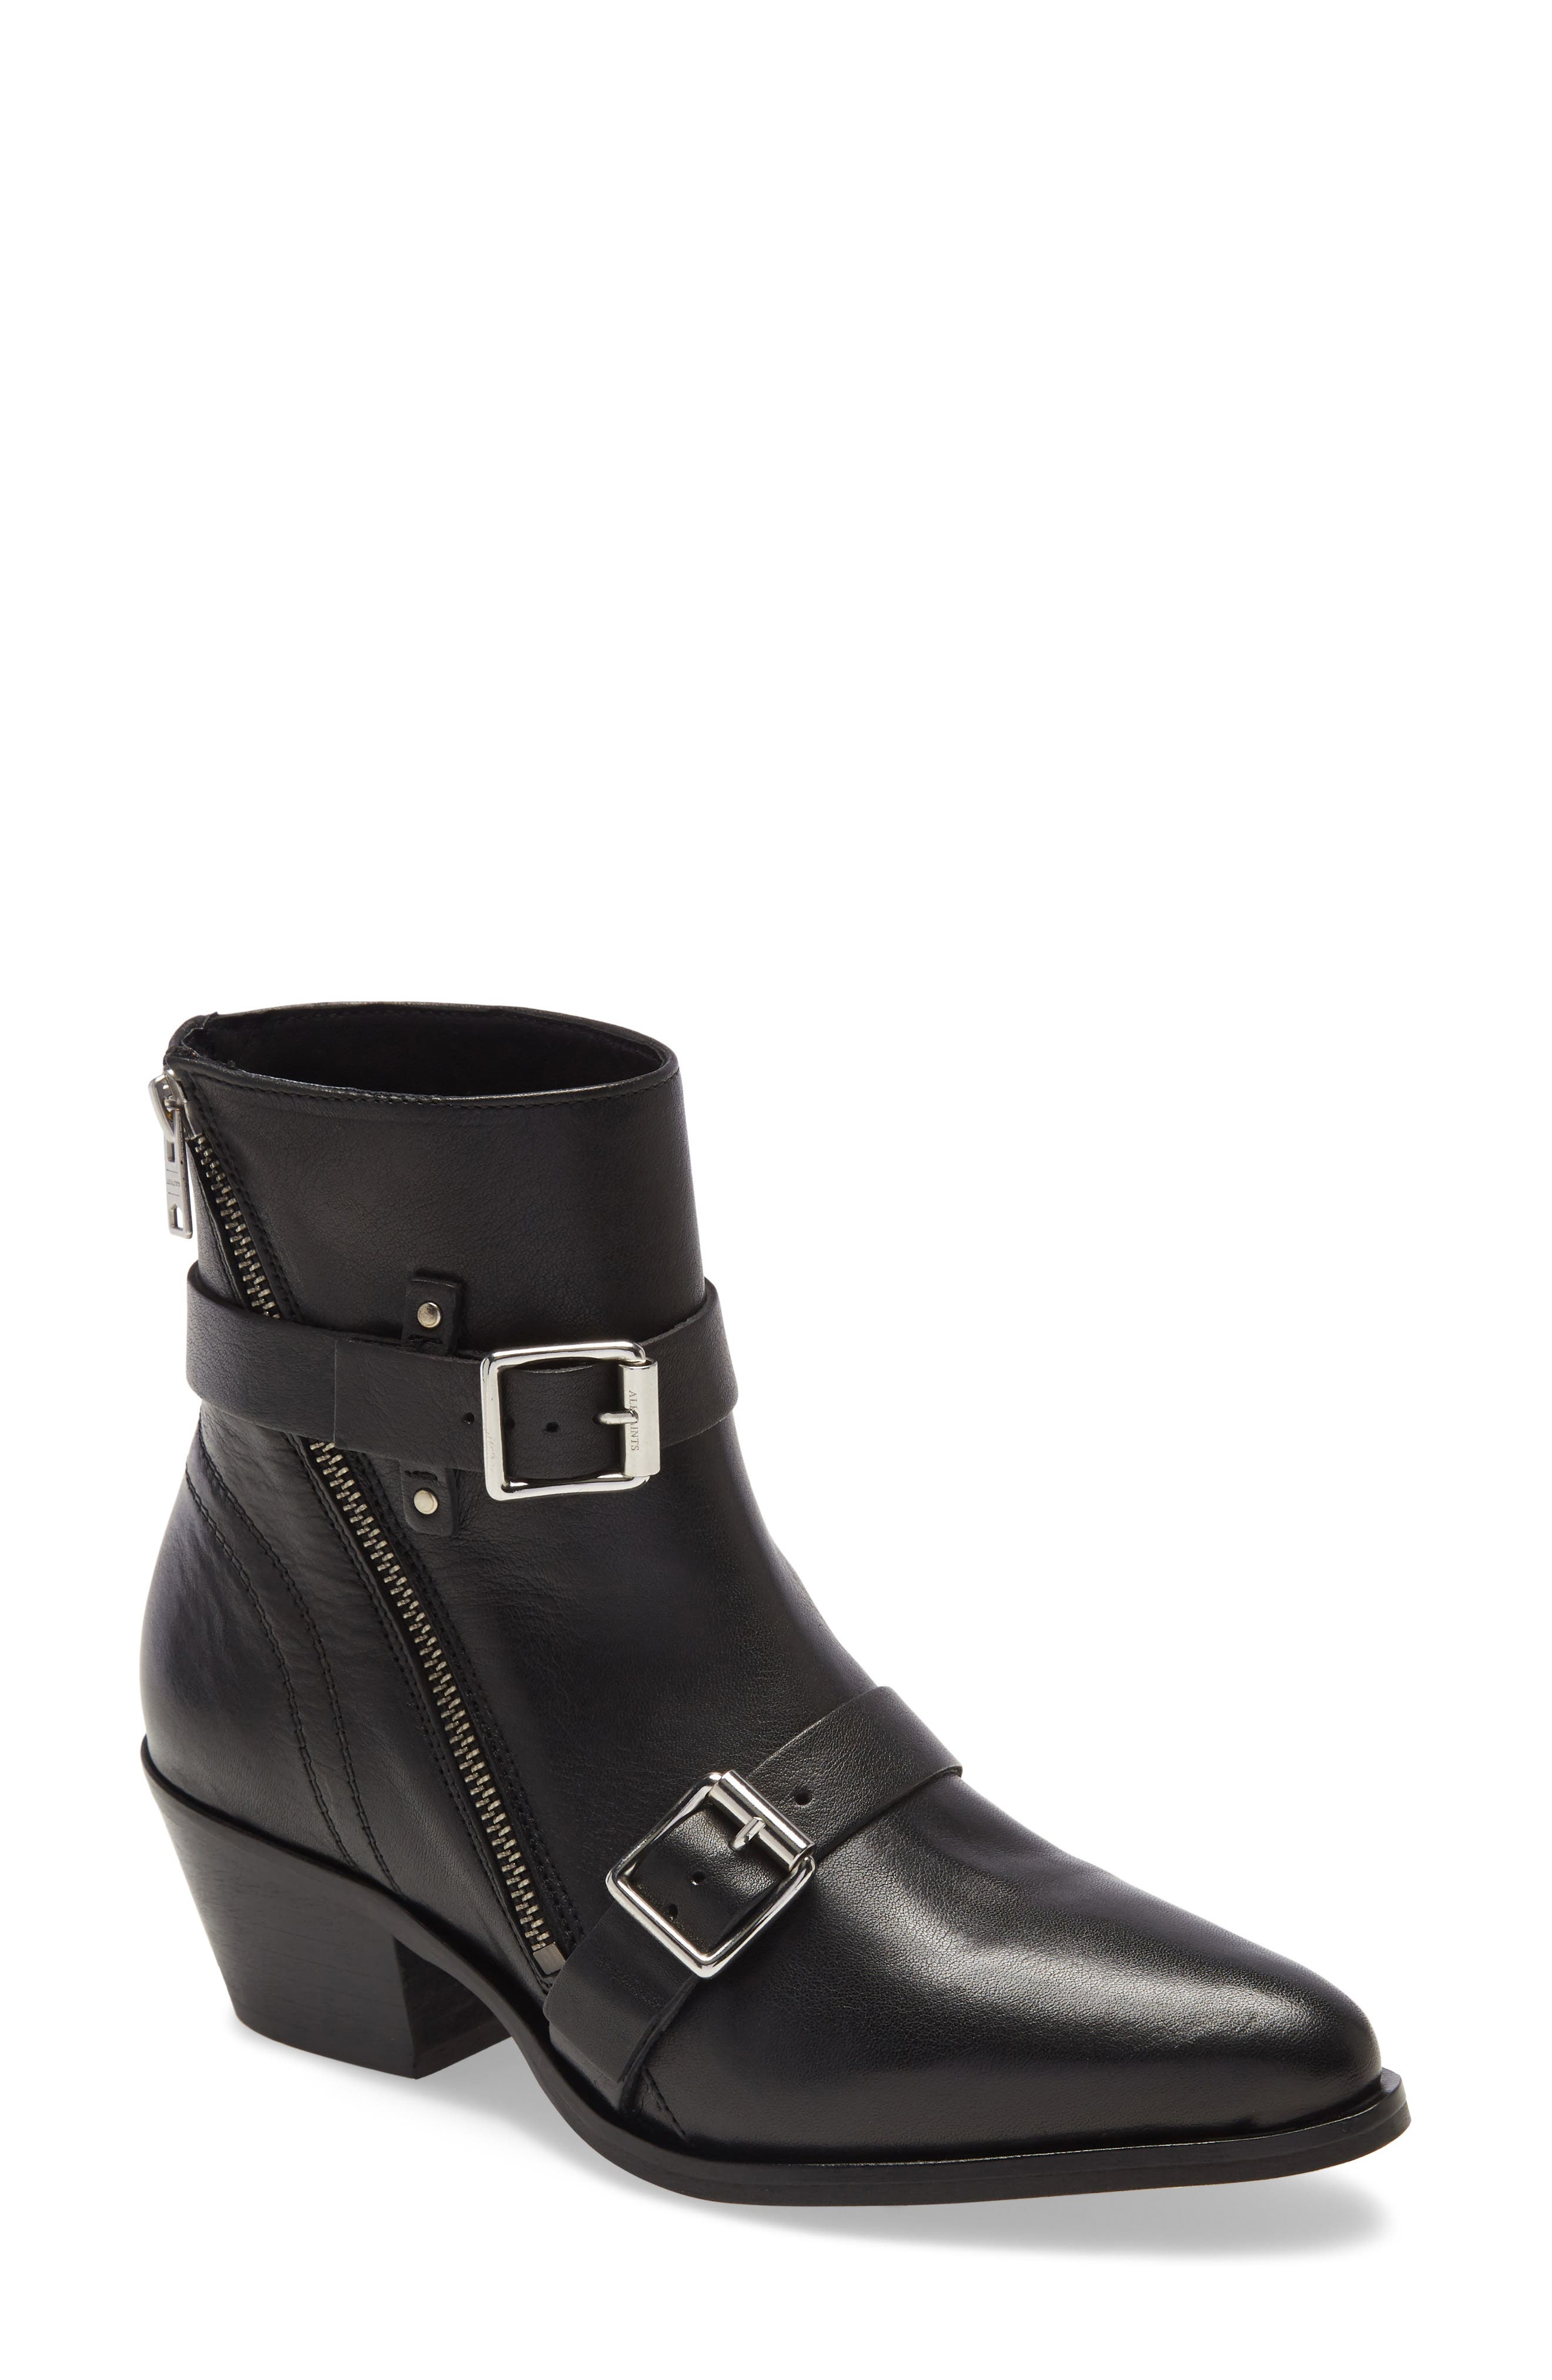 Gleaming buckle hardware lends an extra dash of attitude to a Western-inspired boot with an almond toe and stacked heel. Style Name: Allsaints Lior Bootie (Women). Style Number: 5984247. Available in stores.